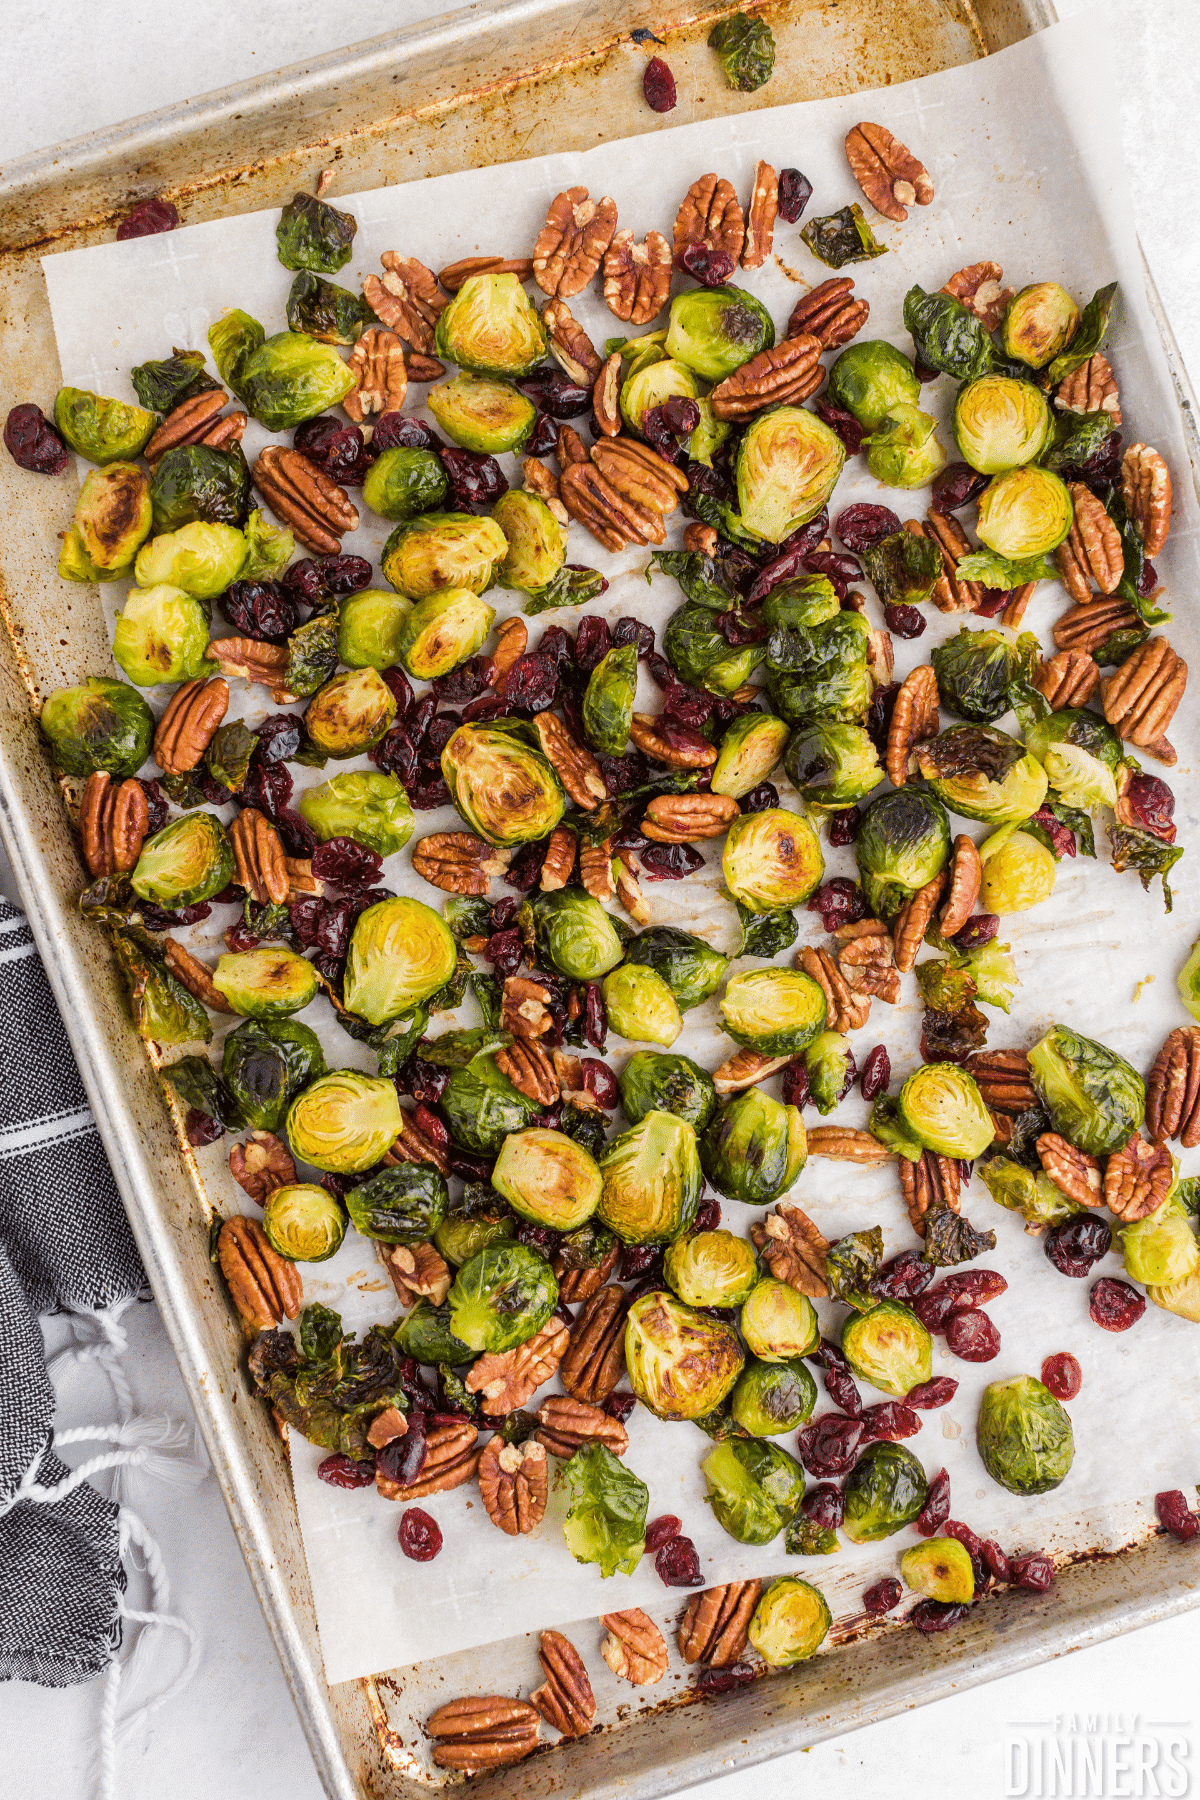 baking sheet covered in roasted brussels sprouts